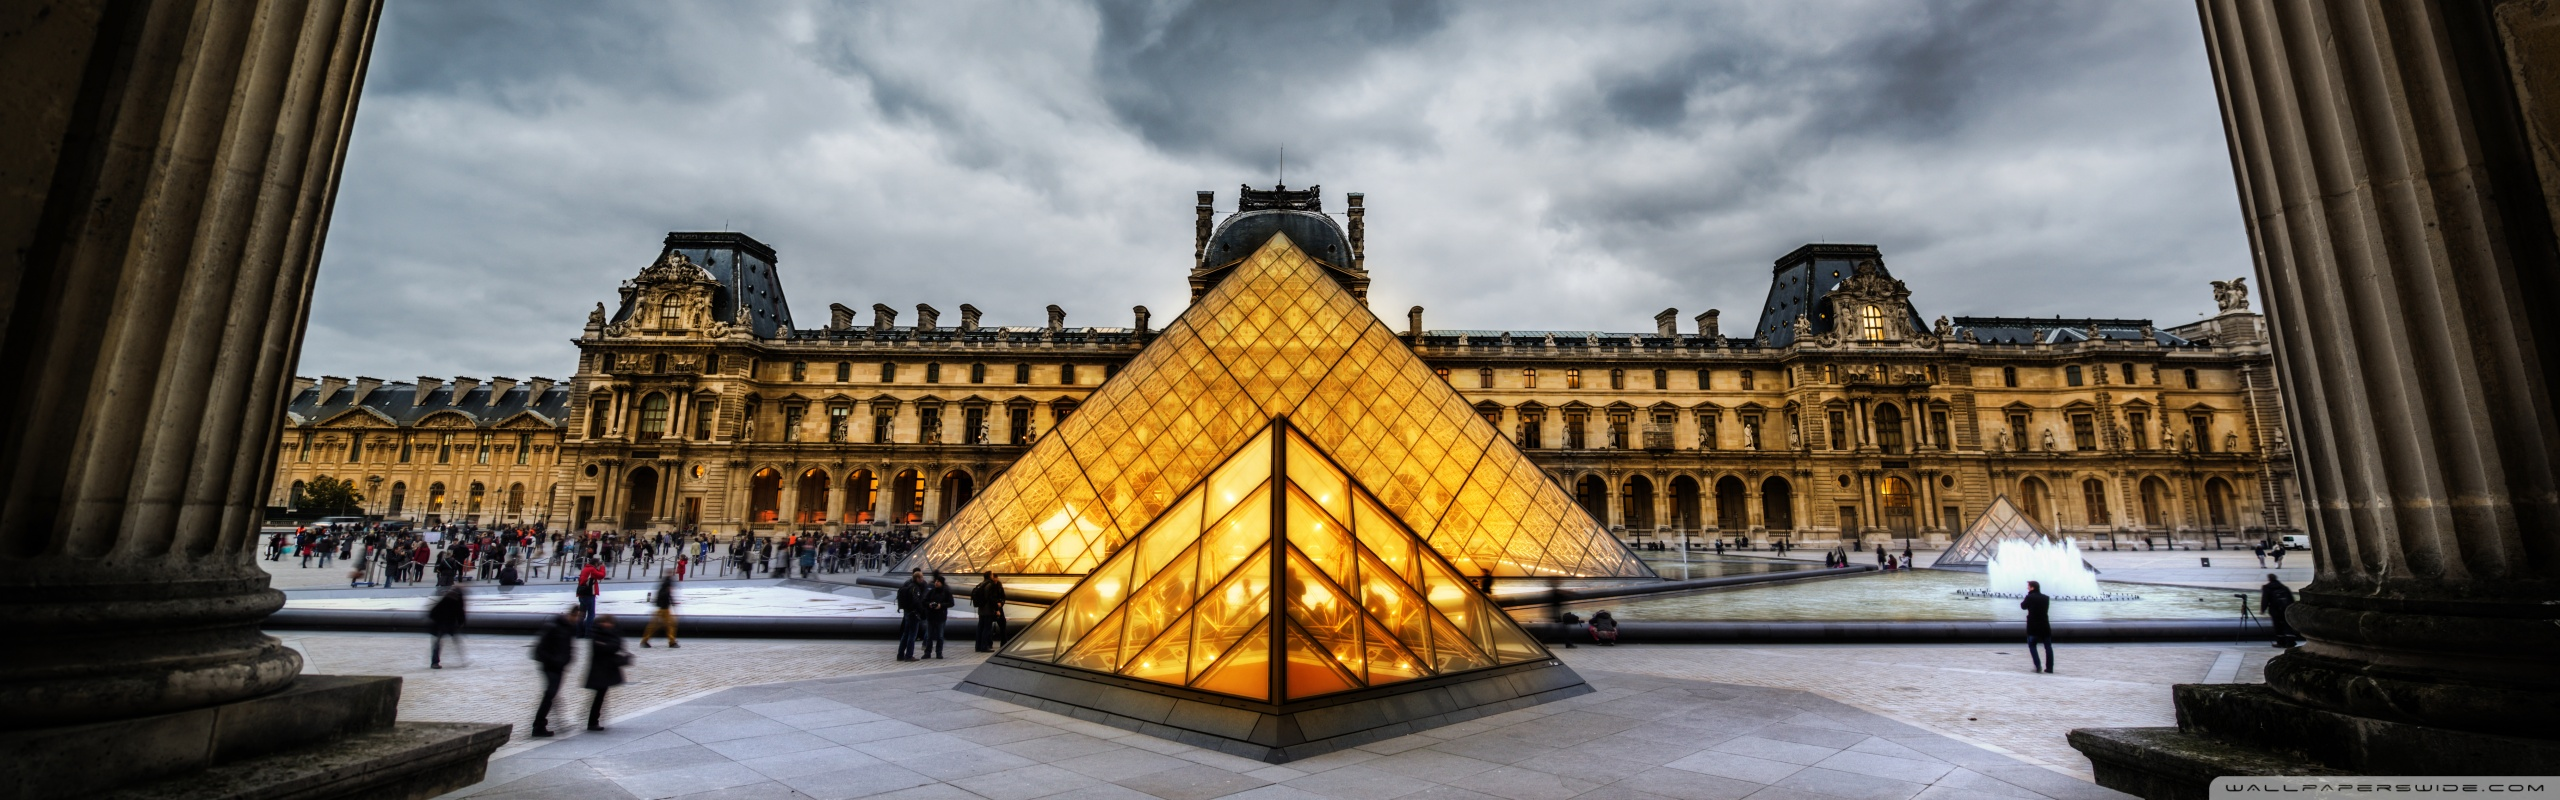 Louvre HDR 4K HD Desktop Wallpaper for Dual Monitor Desktops 2560x800